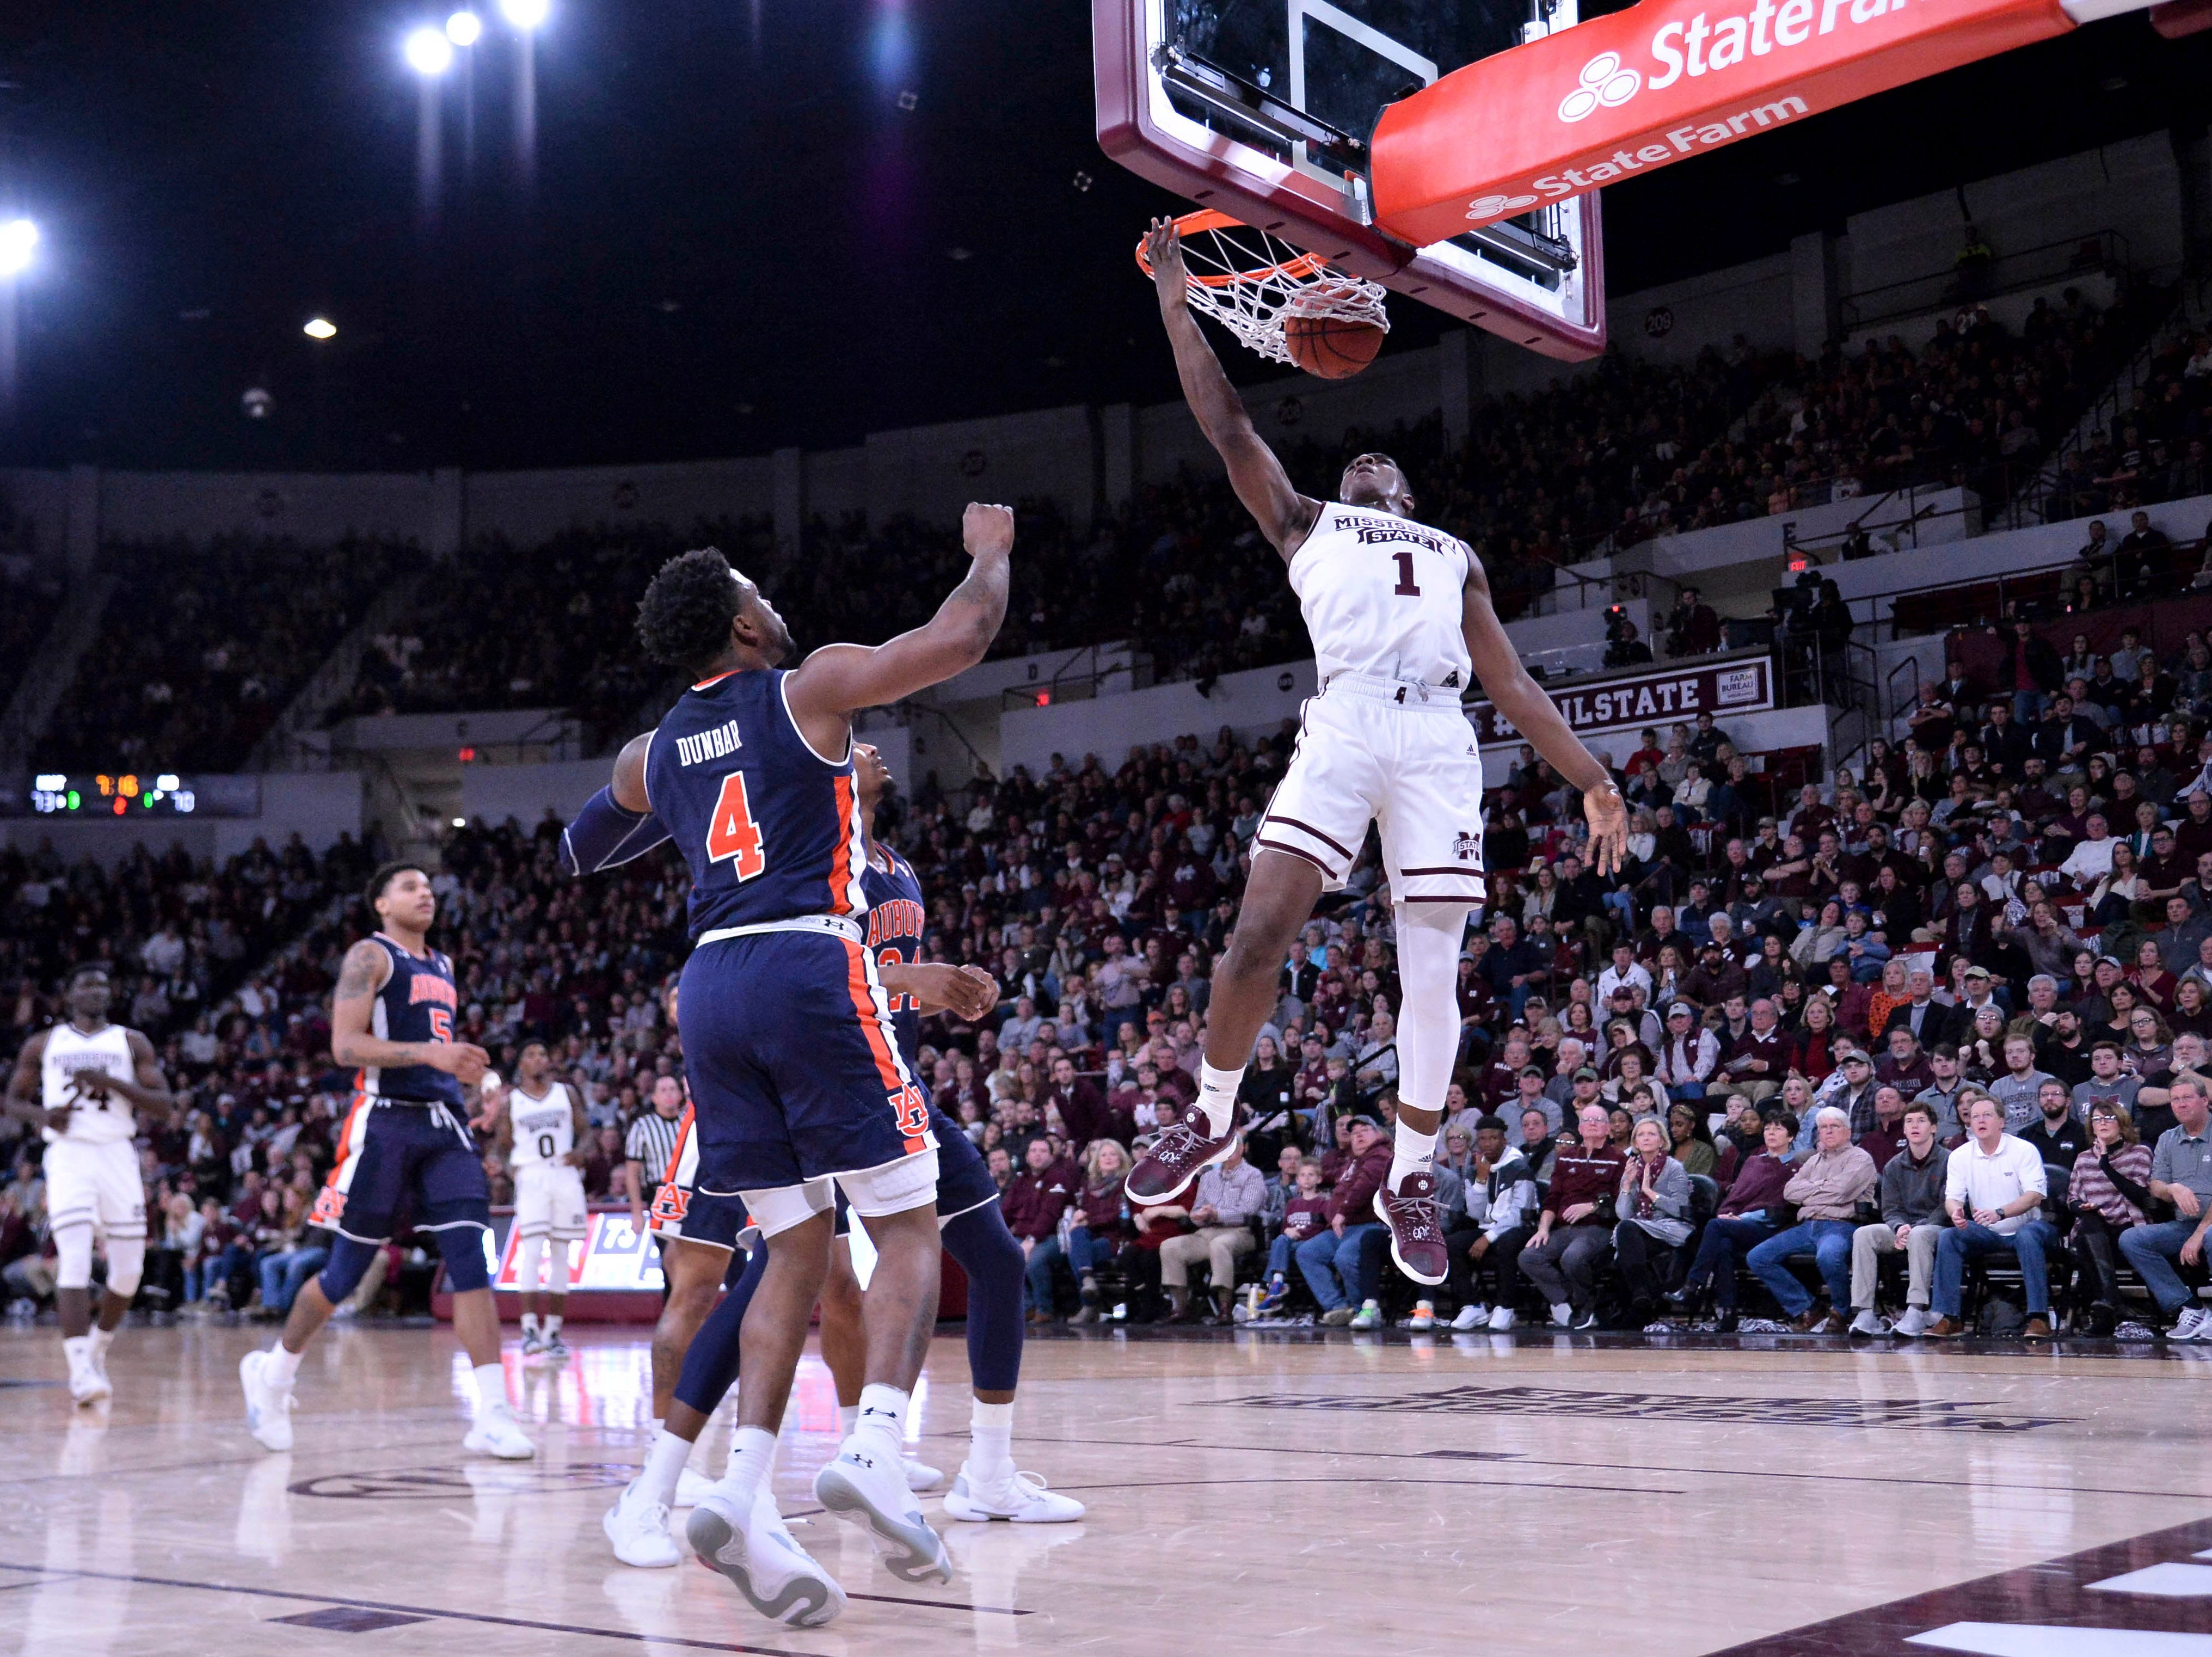 Jan 26, 2019; Starkville, MS, USA; Mississippi State Bulldogs forward Reggie Perry (1) dunks against Auburn Tigers guard Malik Dunbar (4) and forward Anfernee McLemore (24) during the second half at Humphrey Coliseum. Mandatory Credit: Matt Bush-USA TODAY Sports